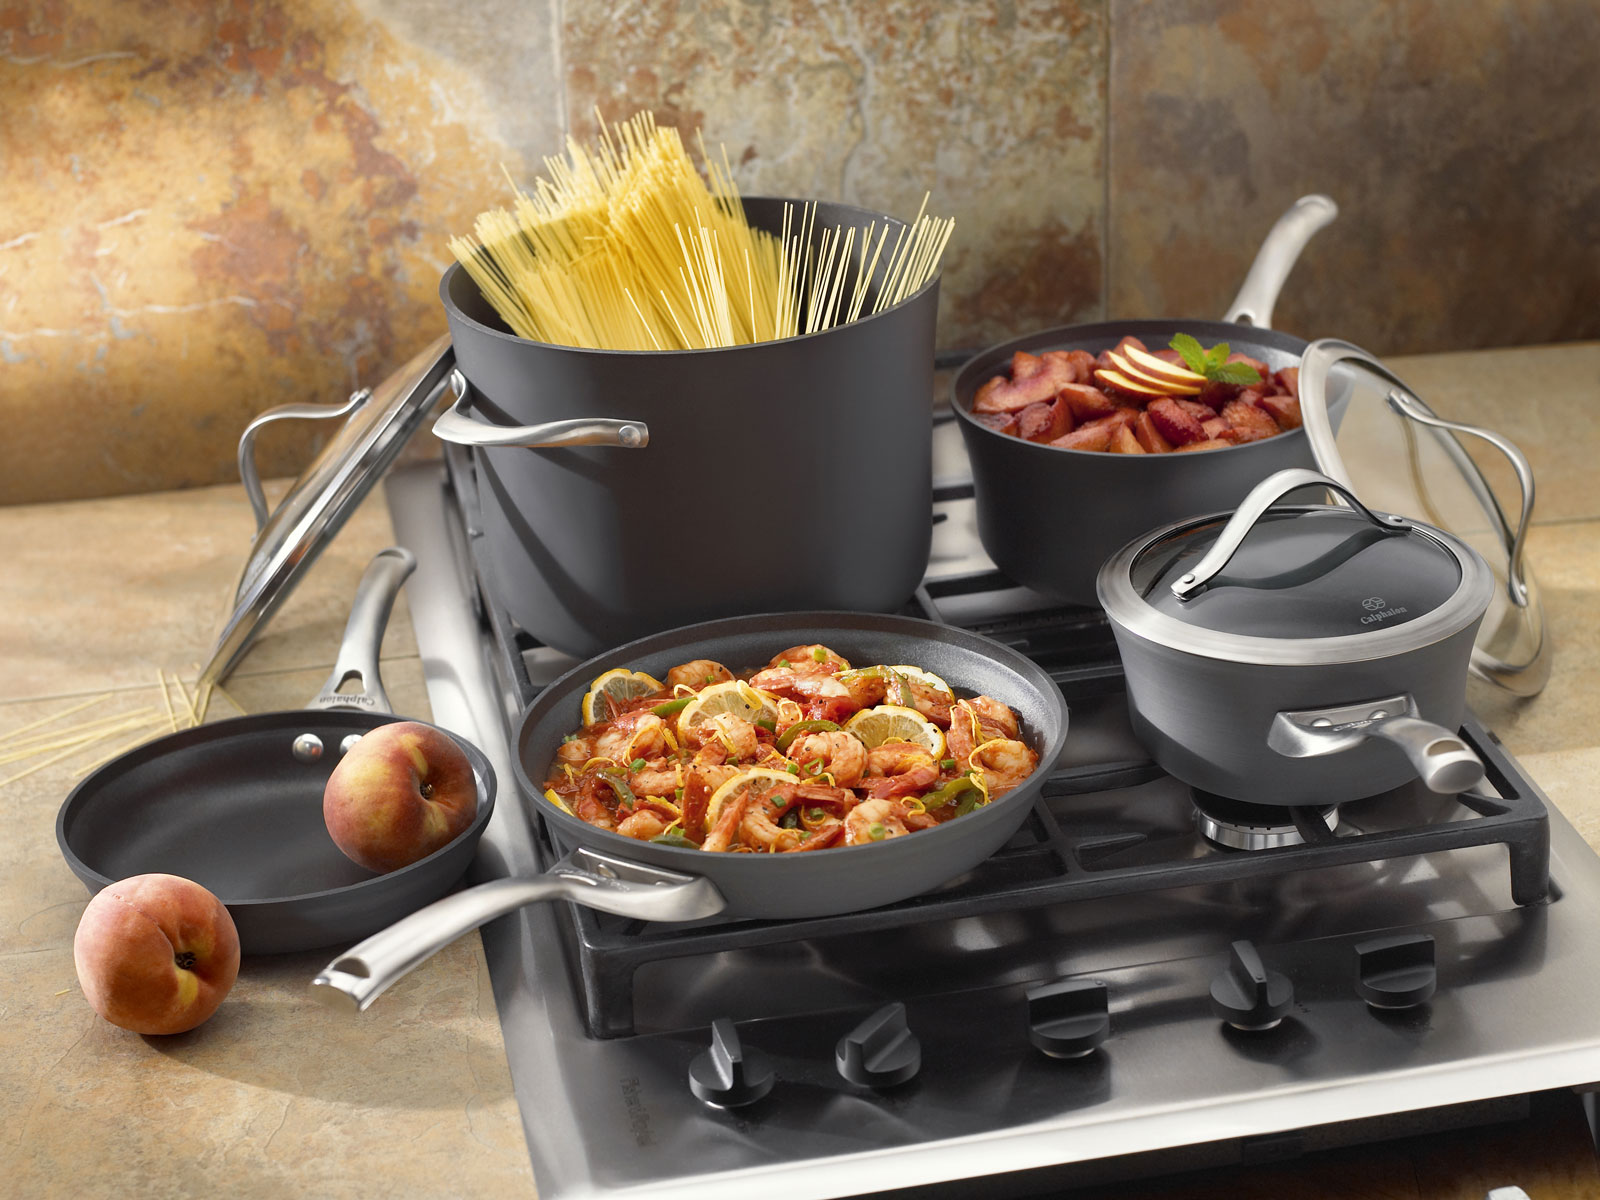 Walmart's President's Day Sale Has Up to 50% Off Top Kitchen Products